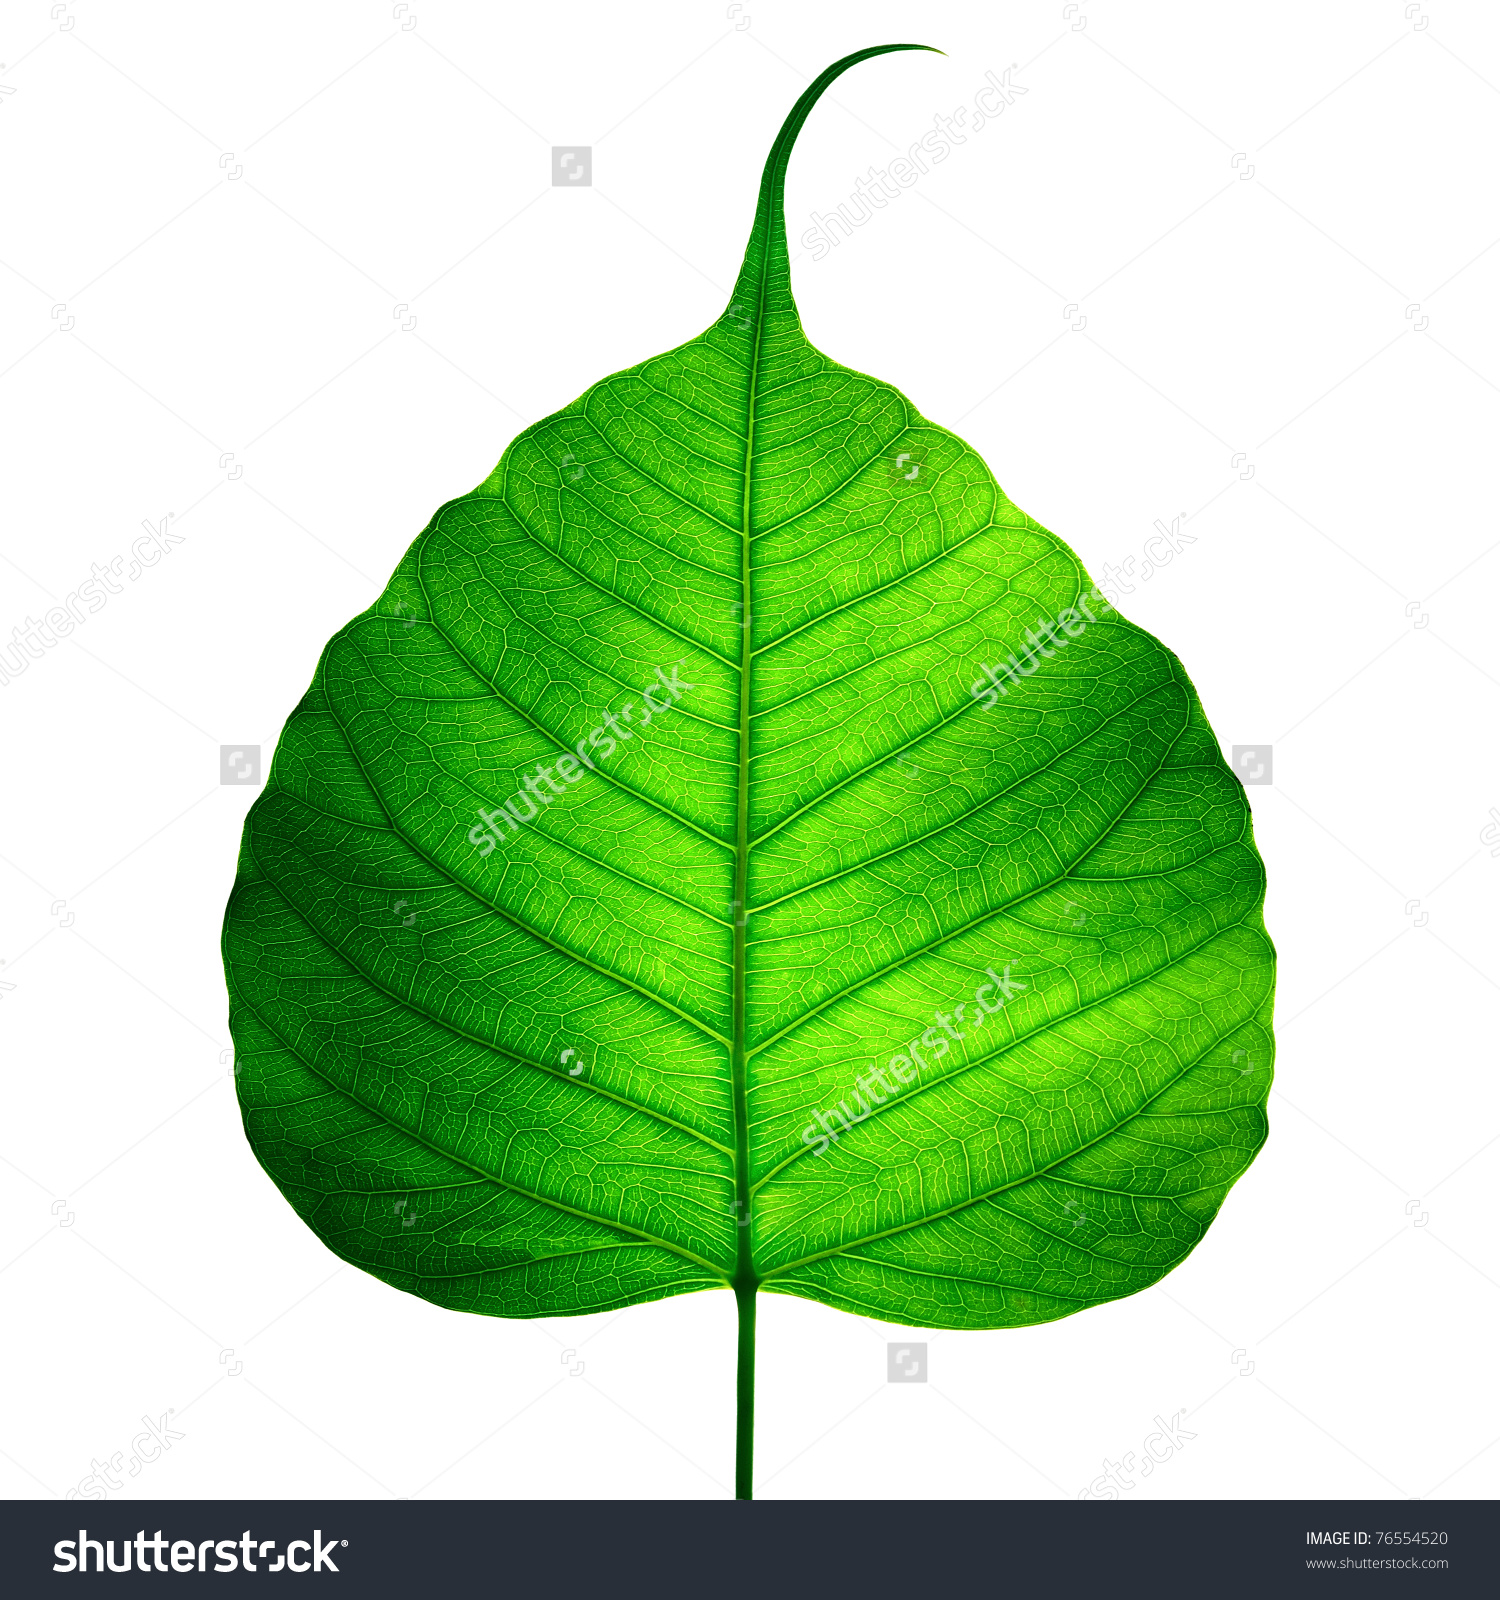 Green Leaf Vein Bodhi Leaf On Stock Photo 76554520.